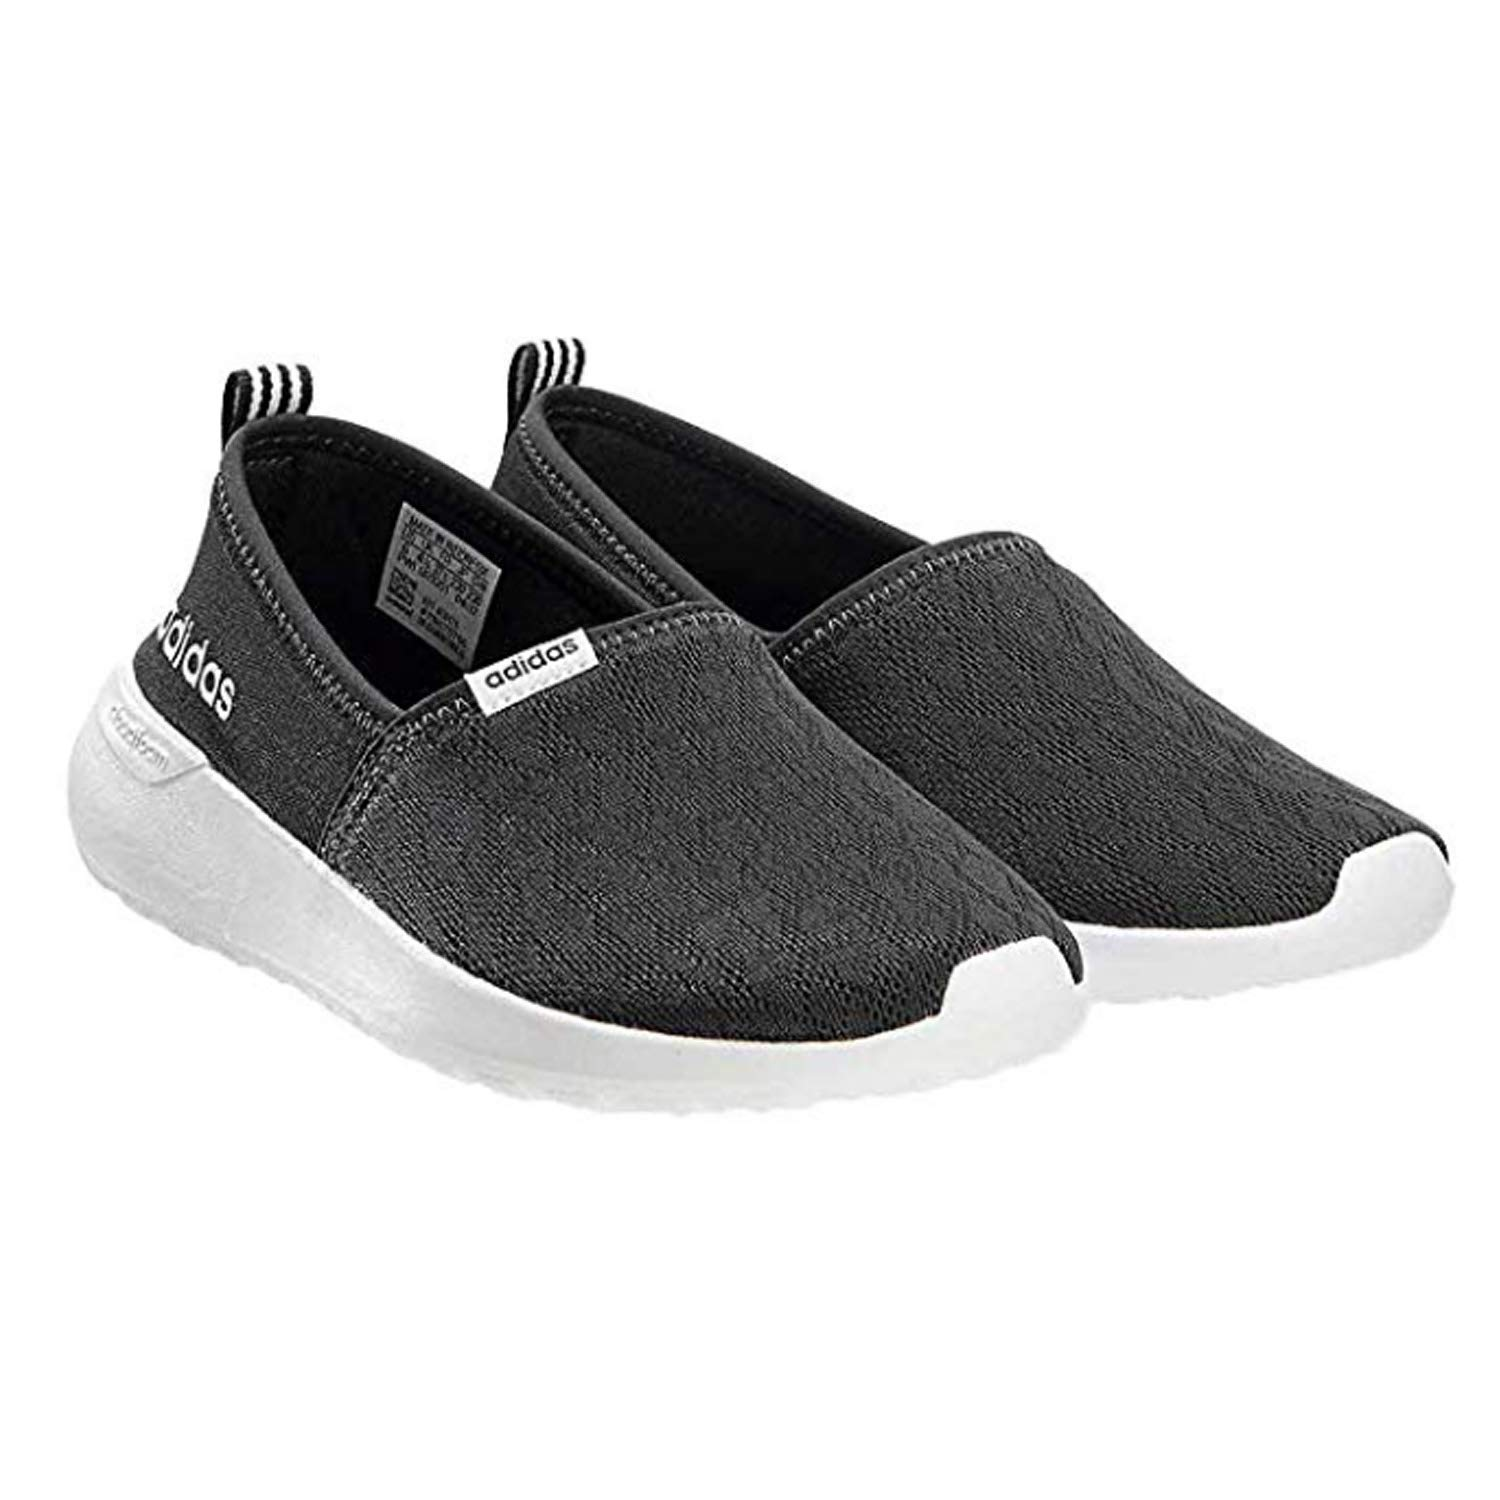 ADIDAS NEO WOMEN'S Cloudfoam Lite Racer Slip On Sneakers Shoes